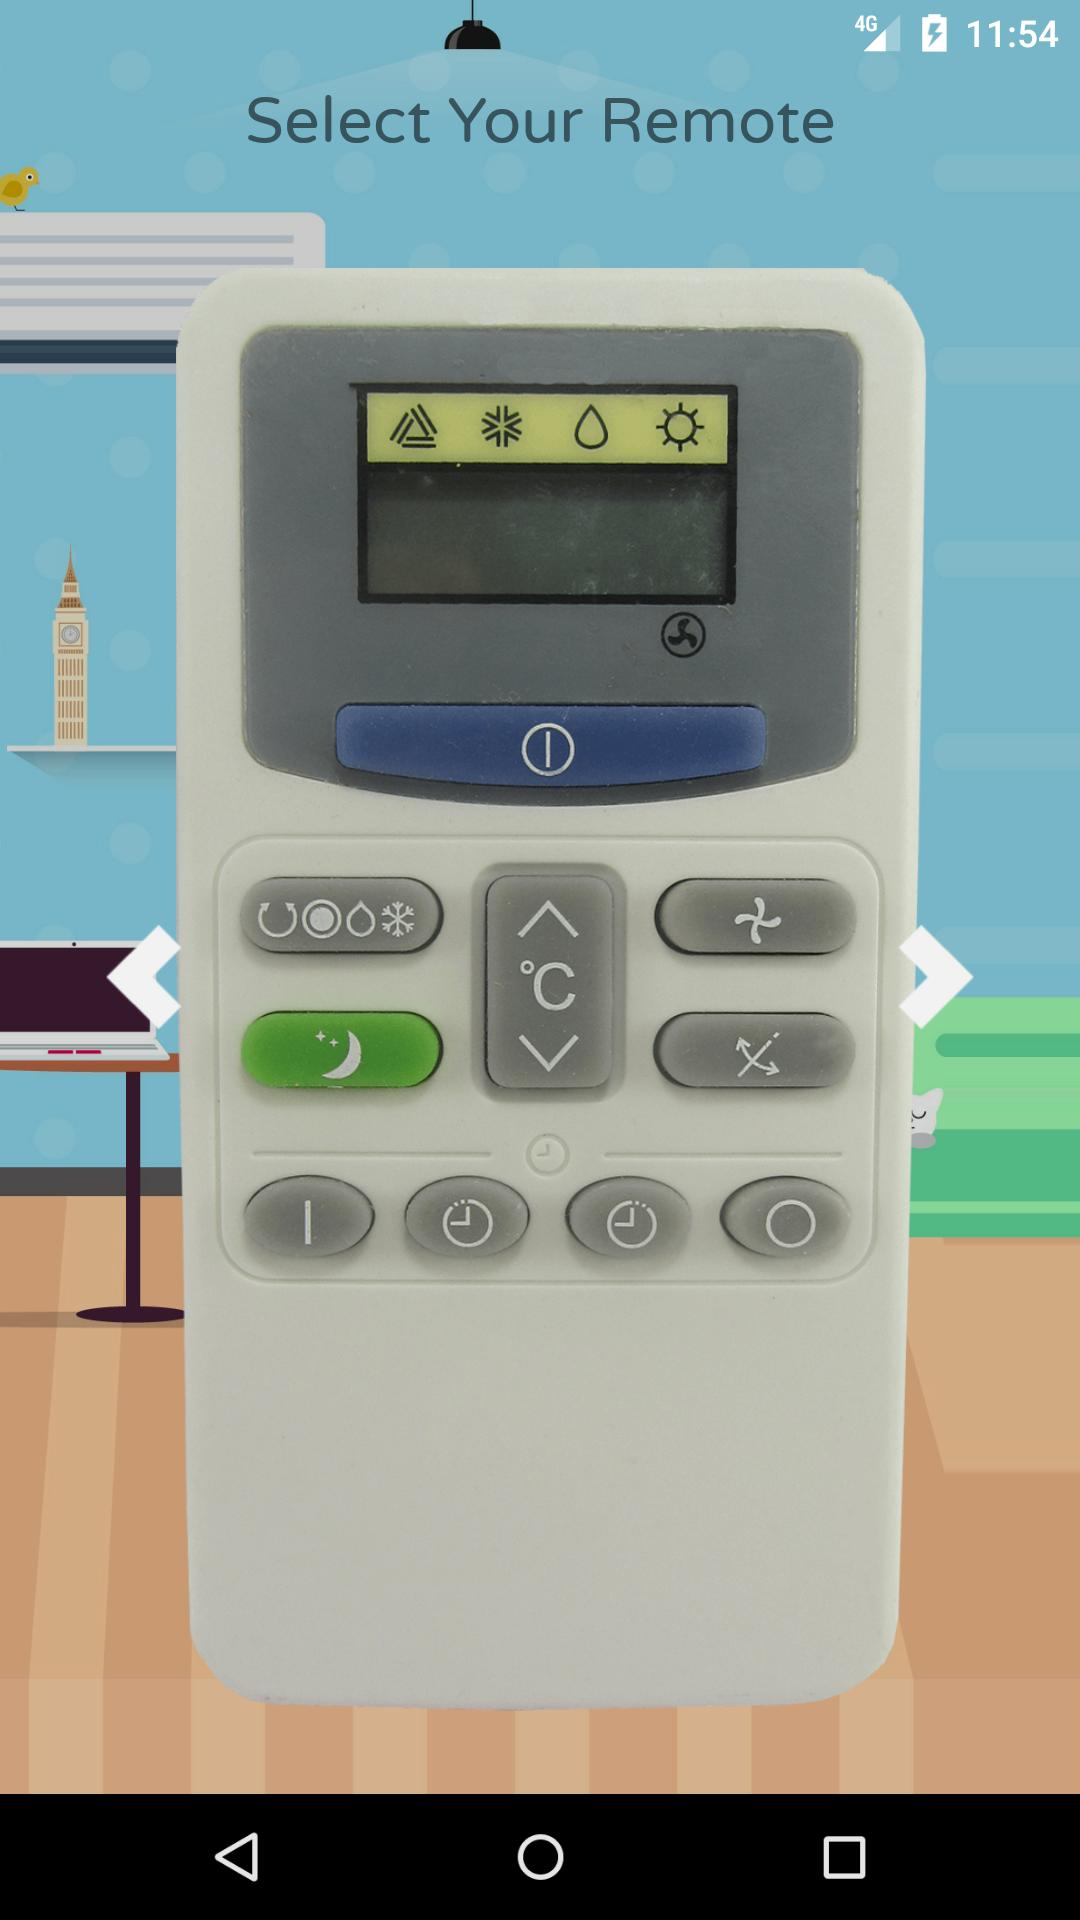 Remote Control For Hitachi Air Conditioner for Android - APK